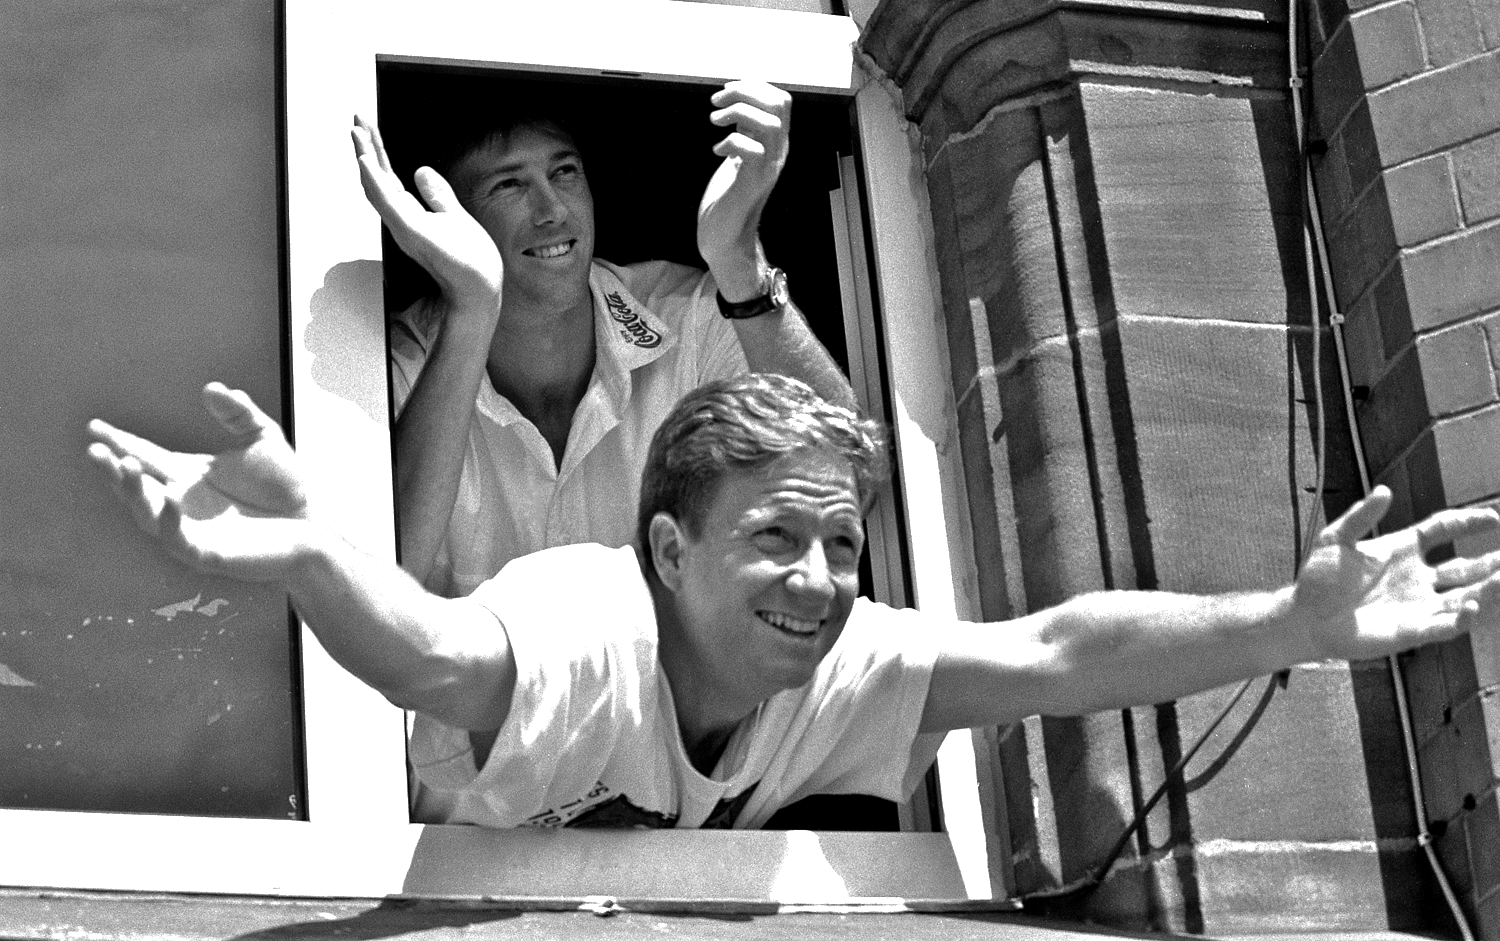 Glenn McGrath & Ian Healy applauding Steve Waugh's second century of the third Test, Manchester, July 1997